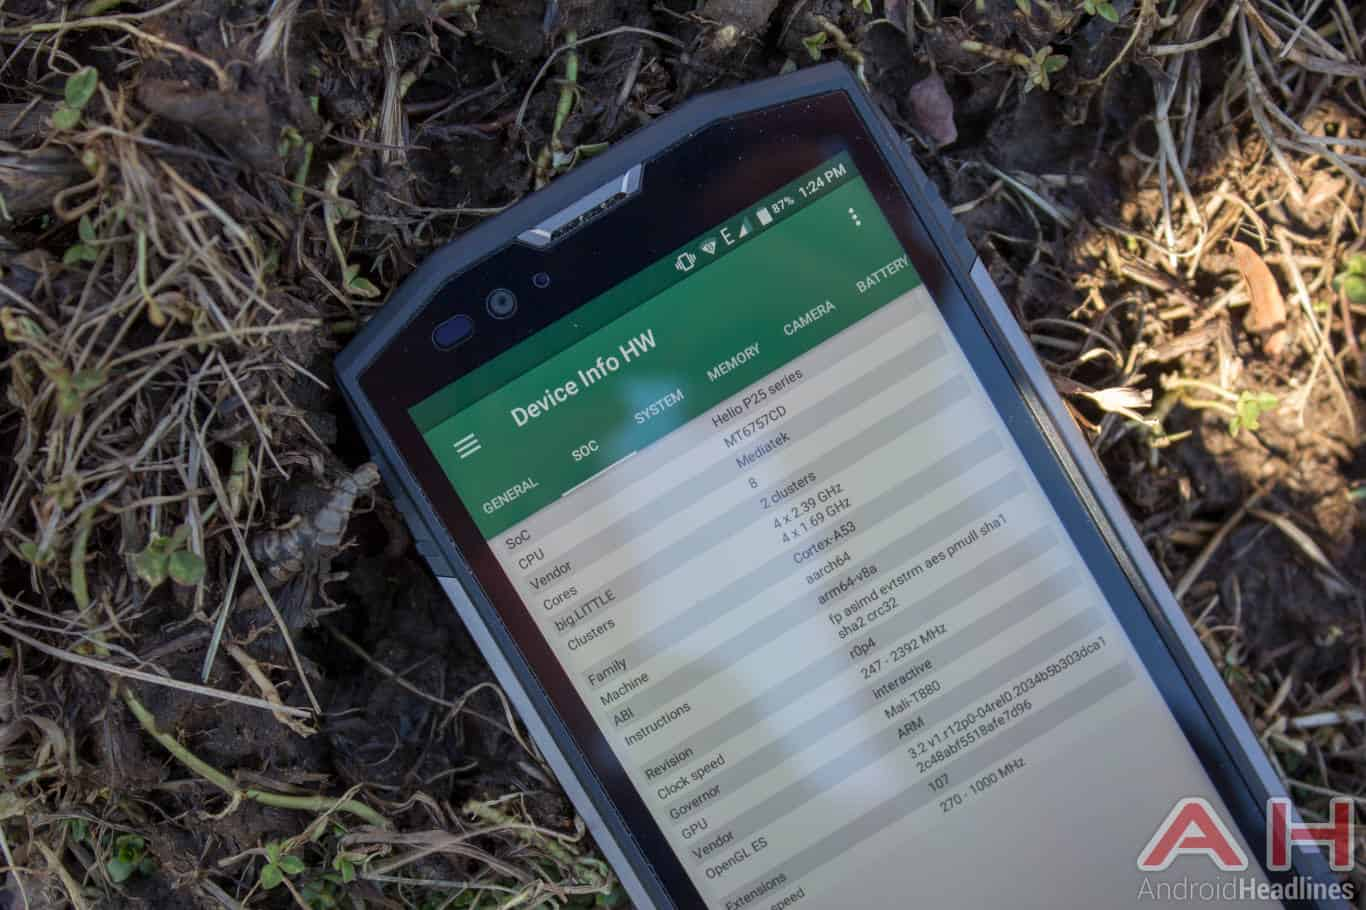 Blackview BV9000 Pro Review – Rugged, Fast, Built to Last